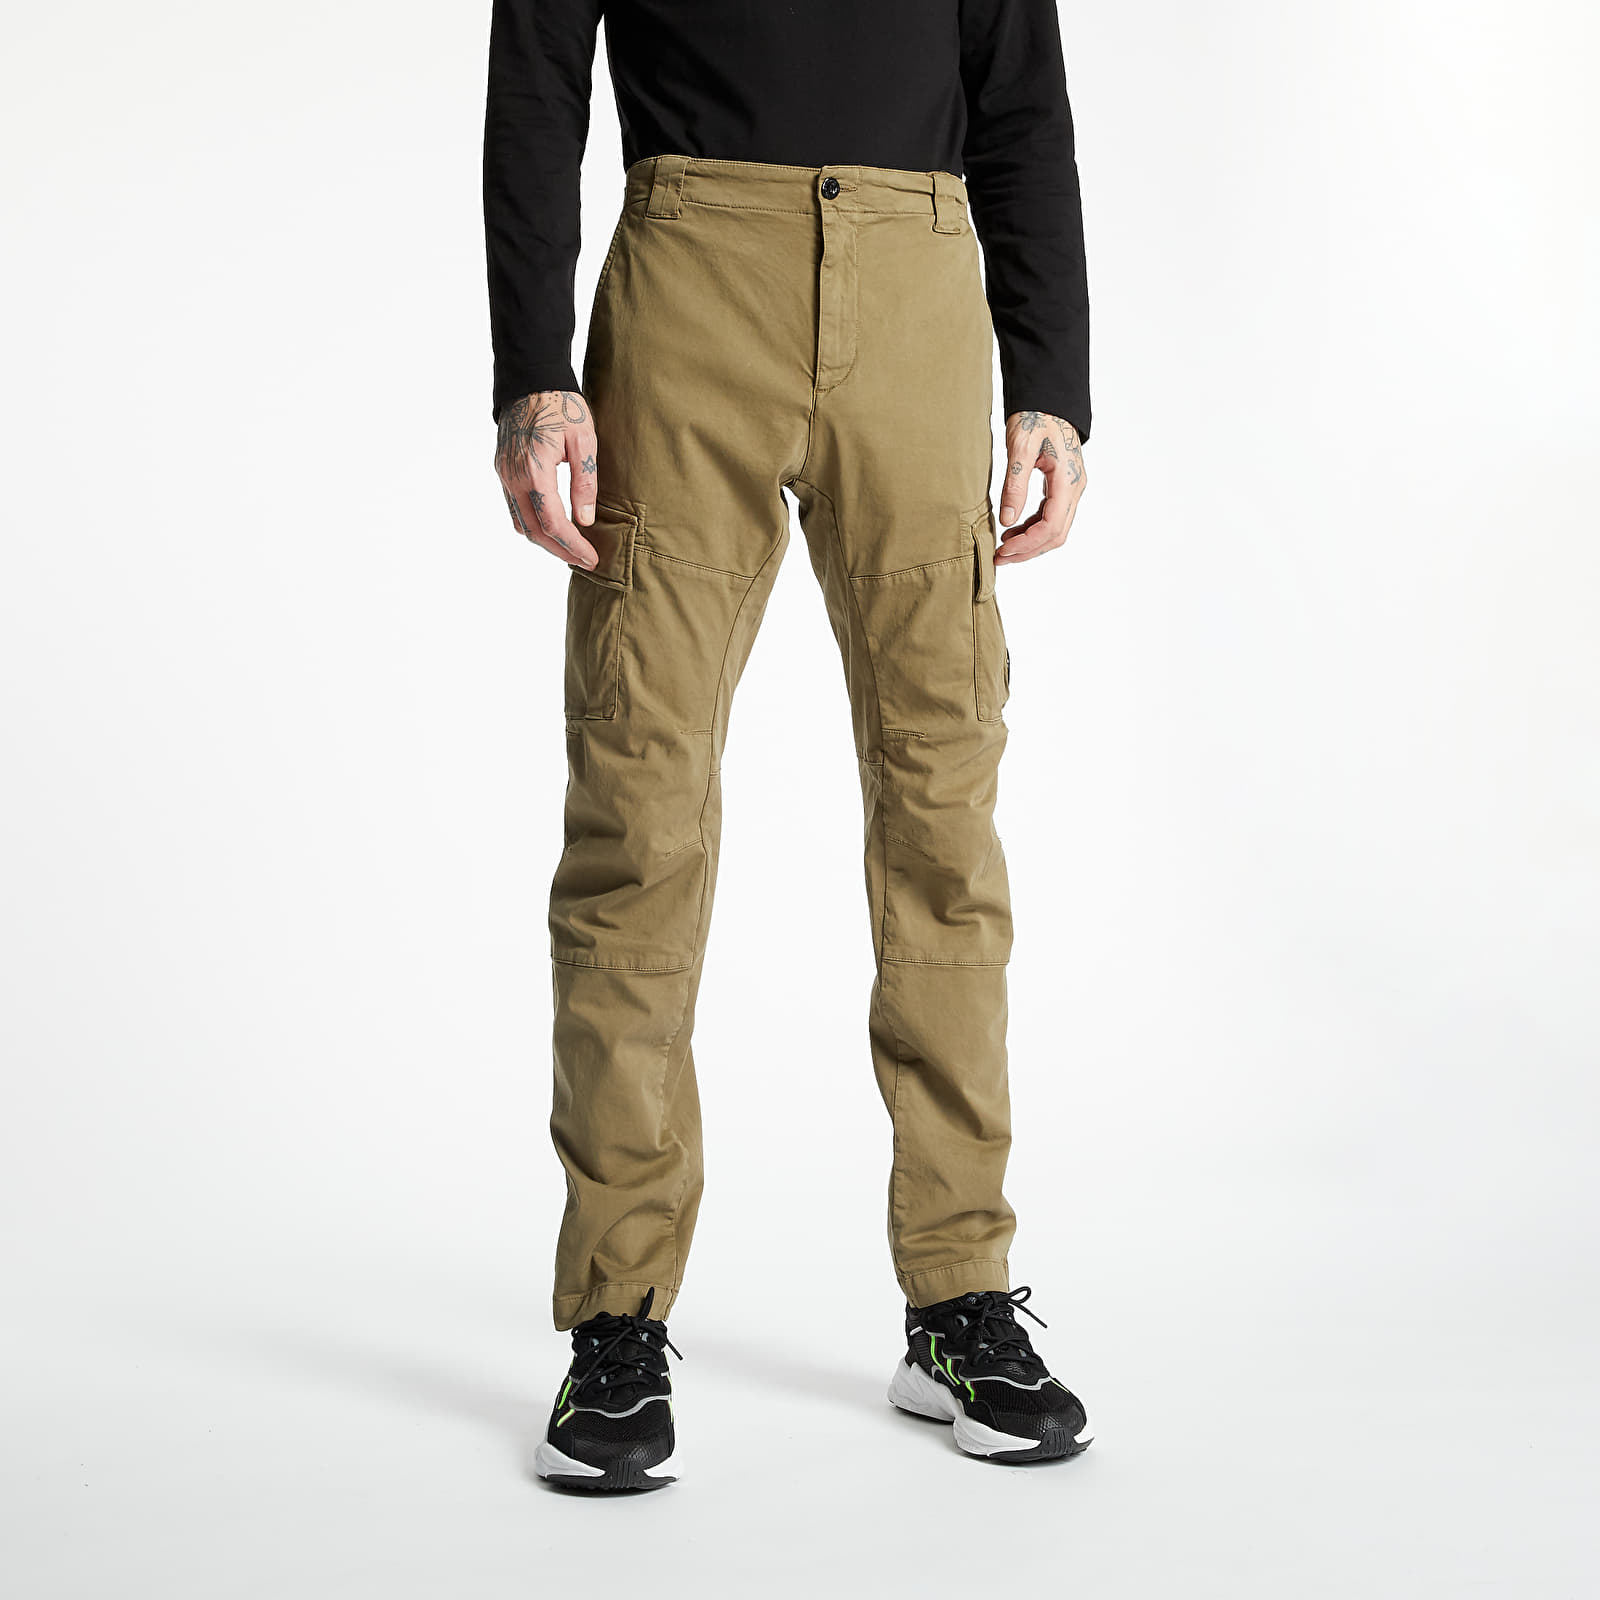 Pants and jeans C.P.Company Cargo Pants Green